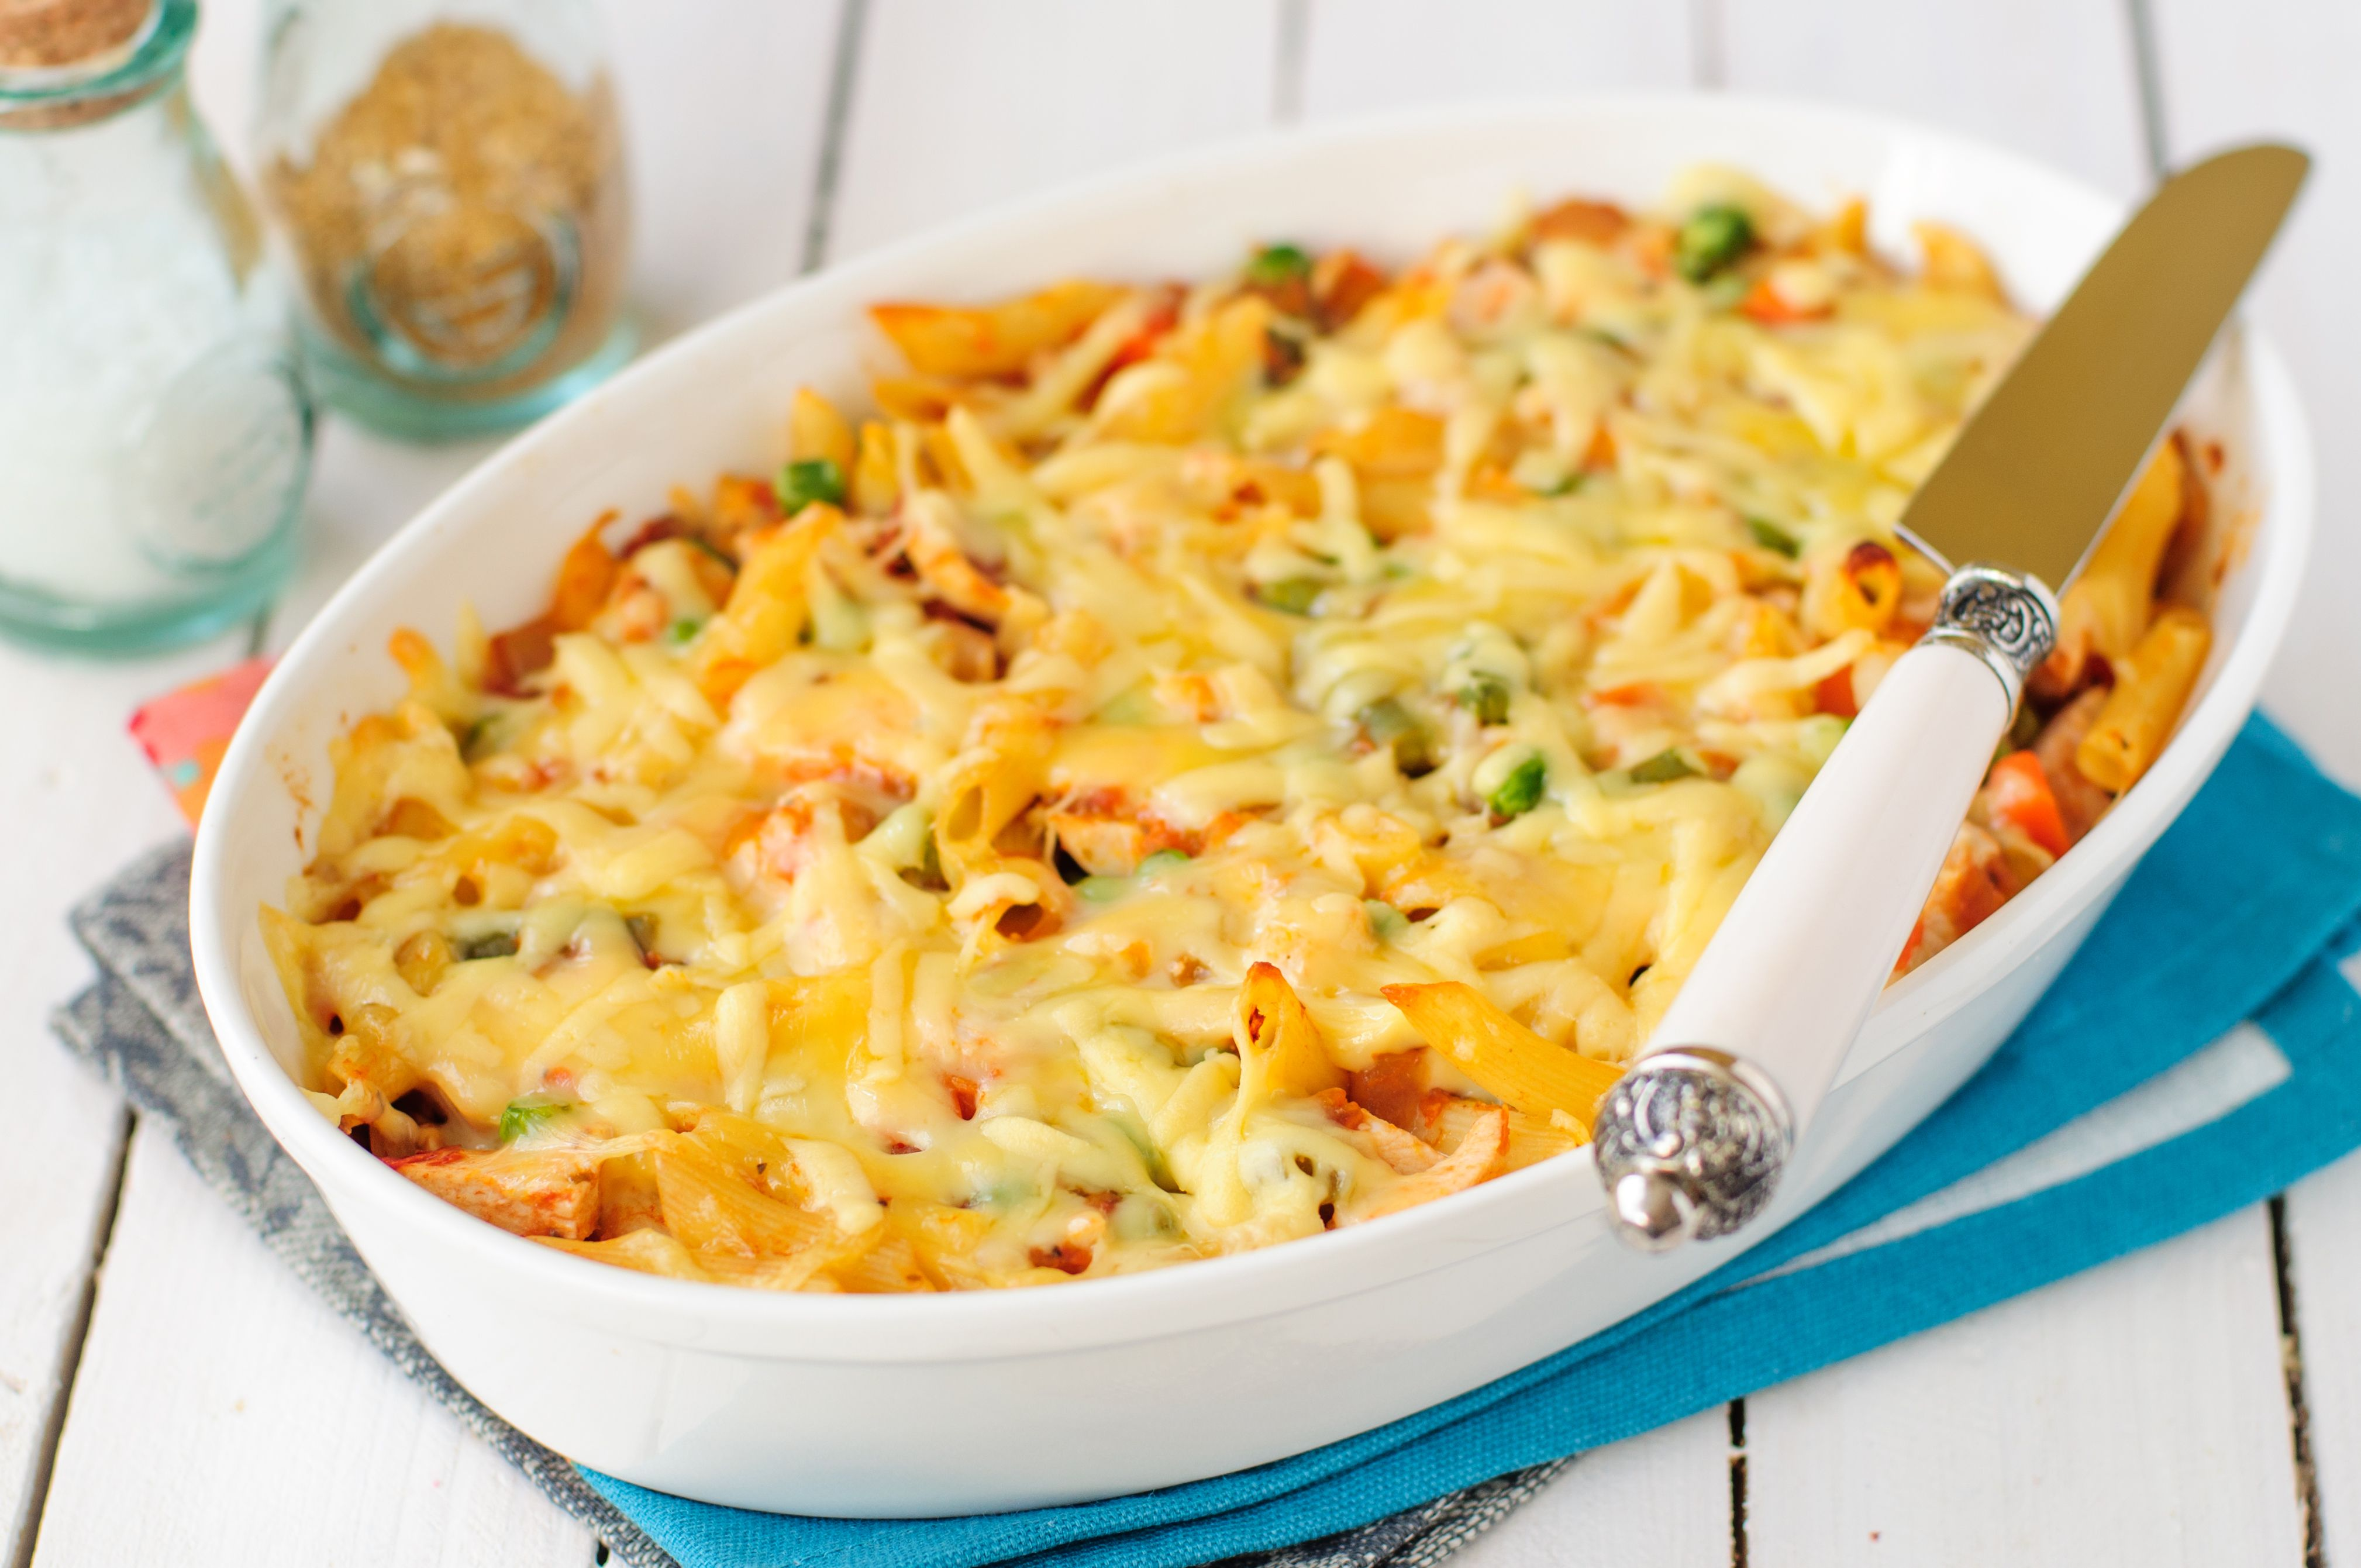 Macaroni, Pumpkin, Chicken and Cheese Pasta Bake served on a white plate. | Source: Shutterstock